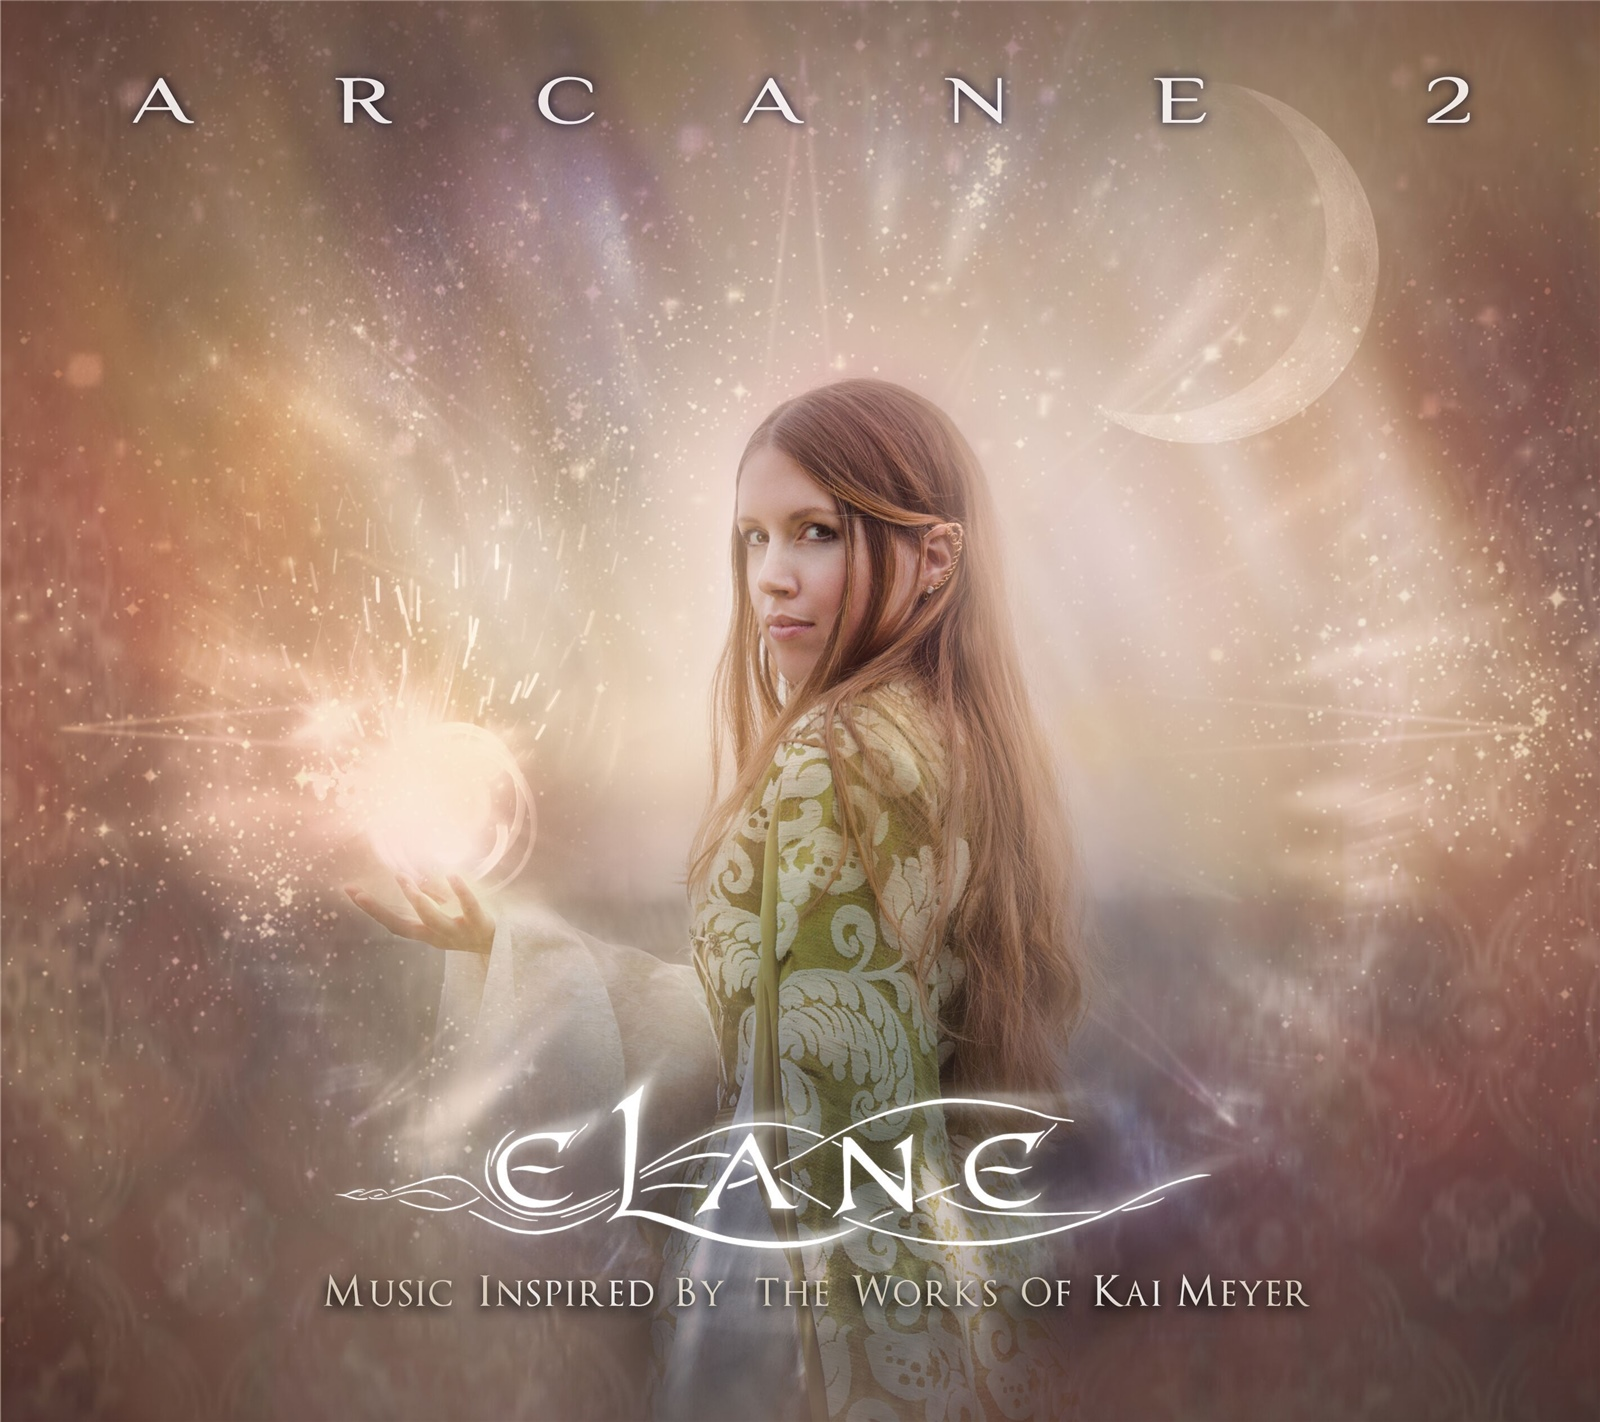 ELANE Arcane 2 (Limited Bundle) CD + Button + Sticker 2017 (VÖ 07.04)